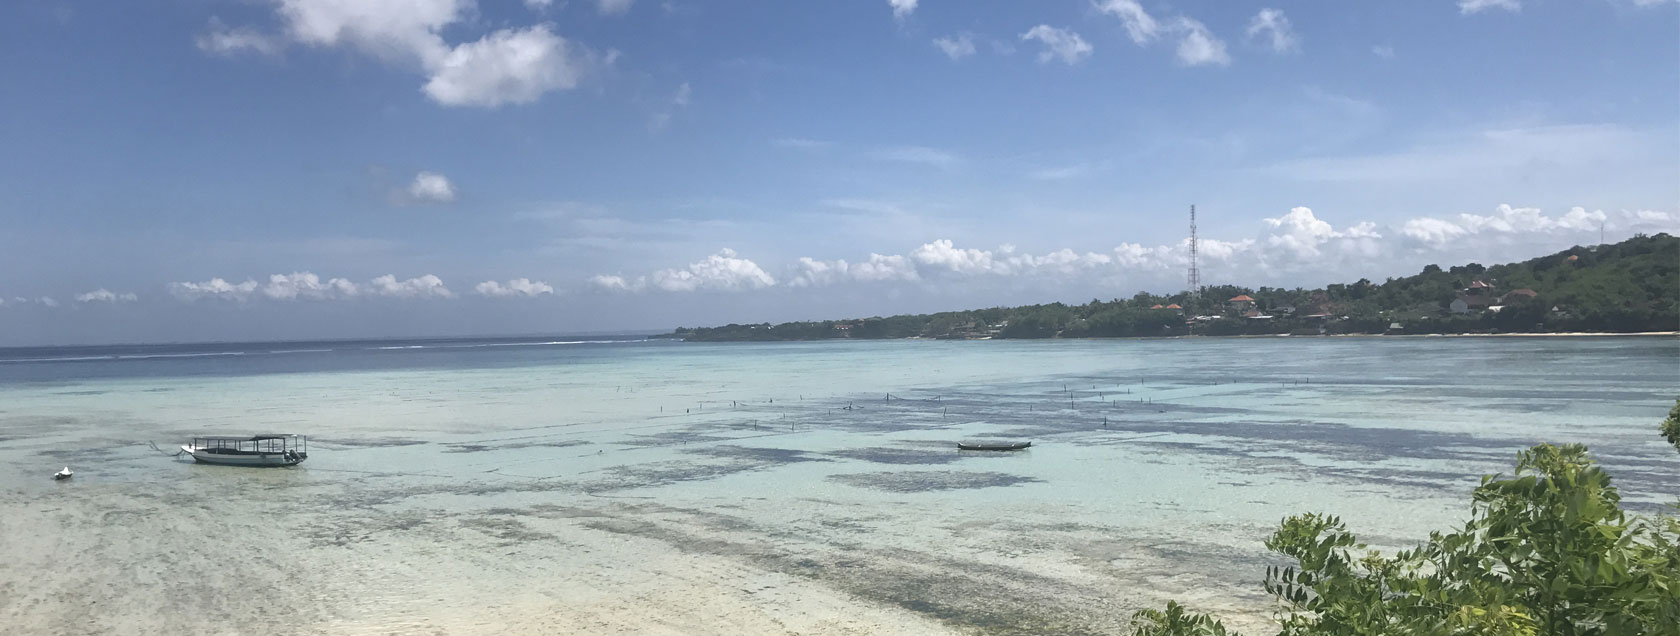 Seaweed Farms - Lembongan Sightseeing